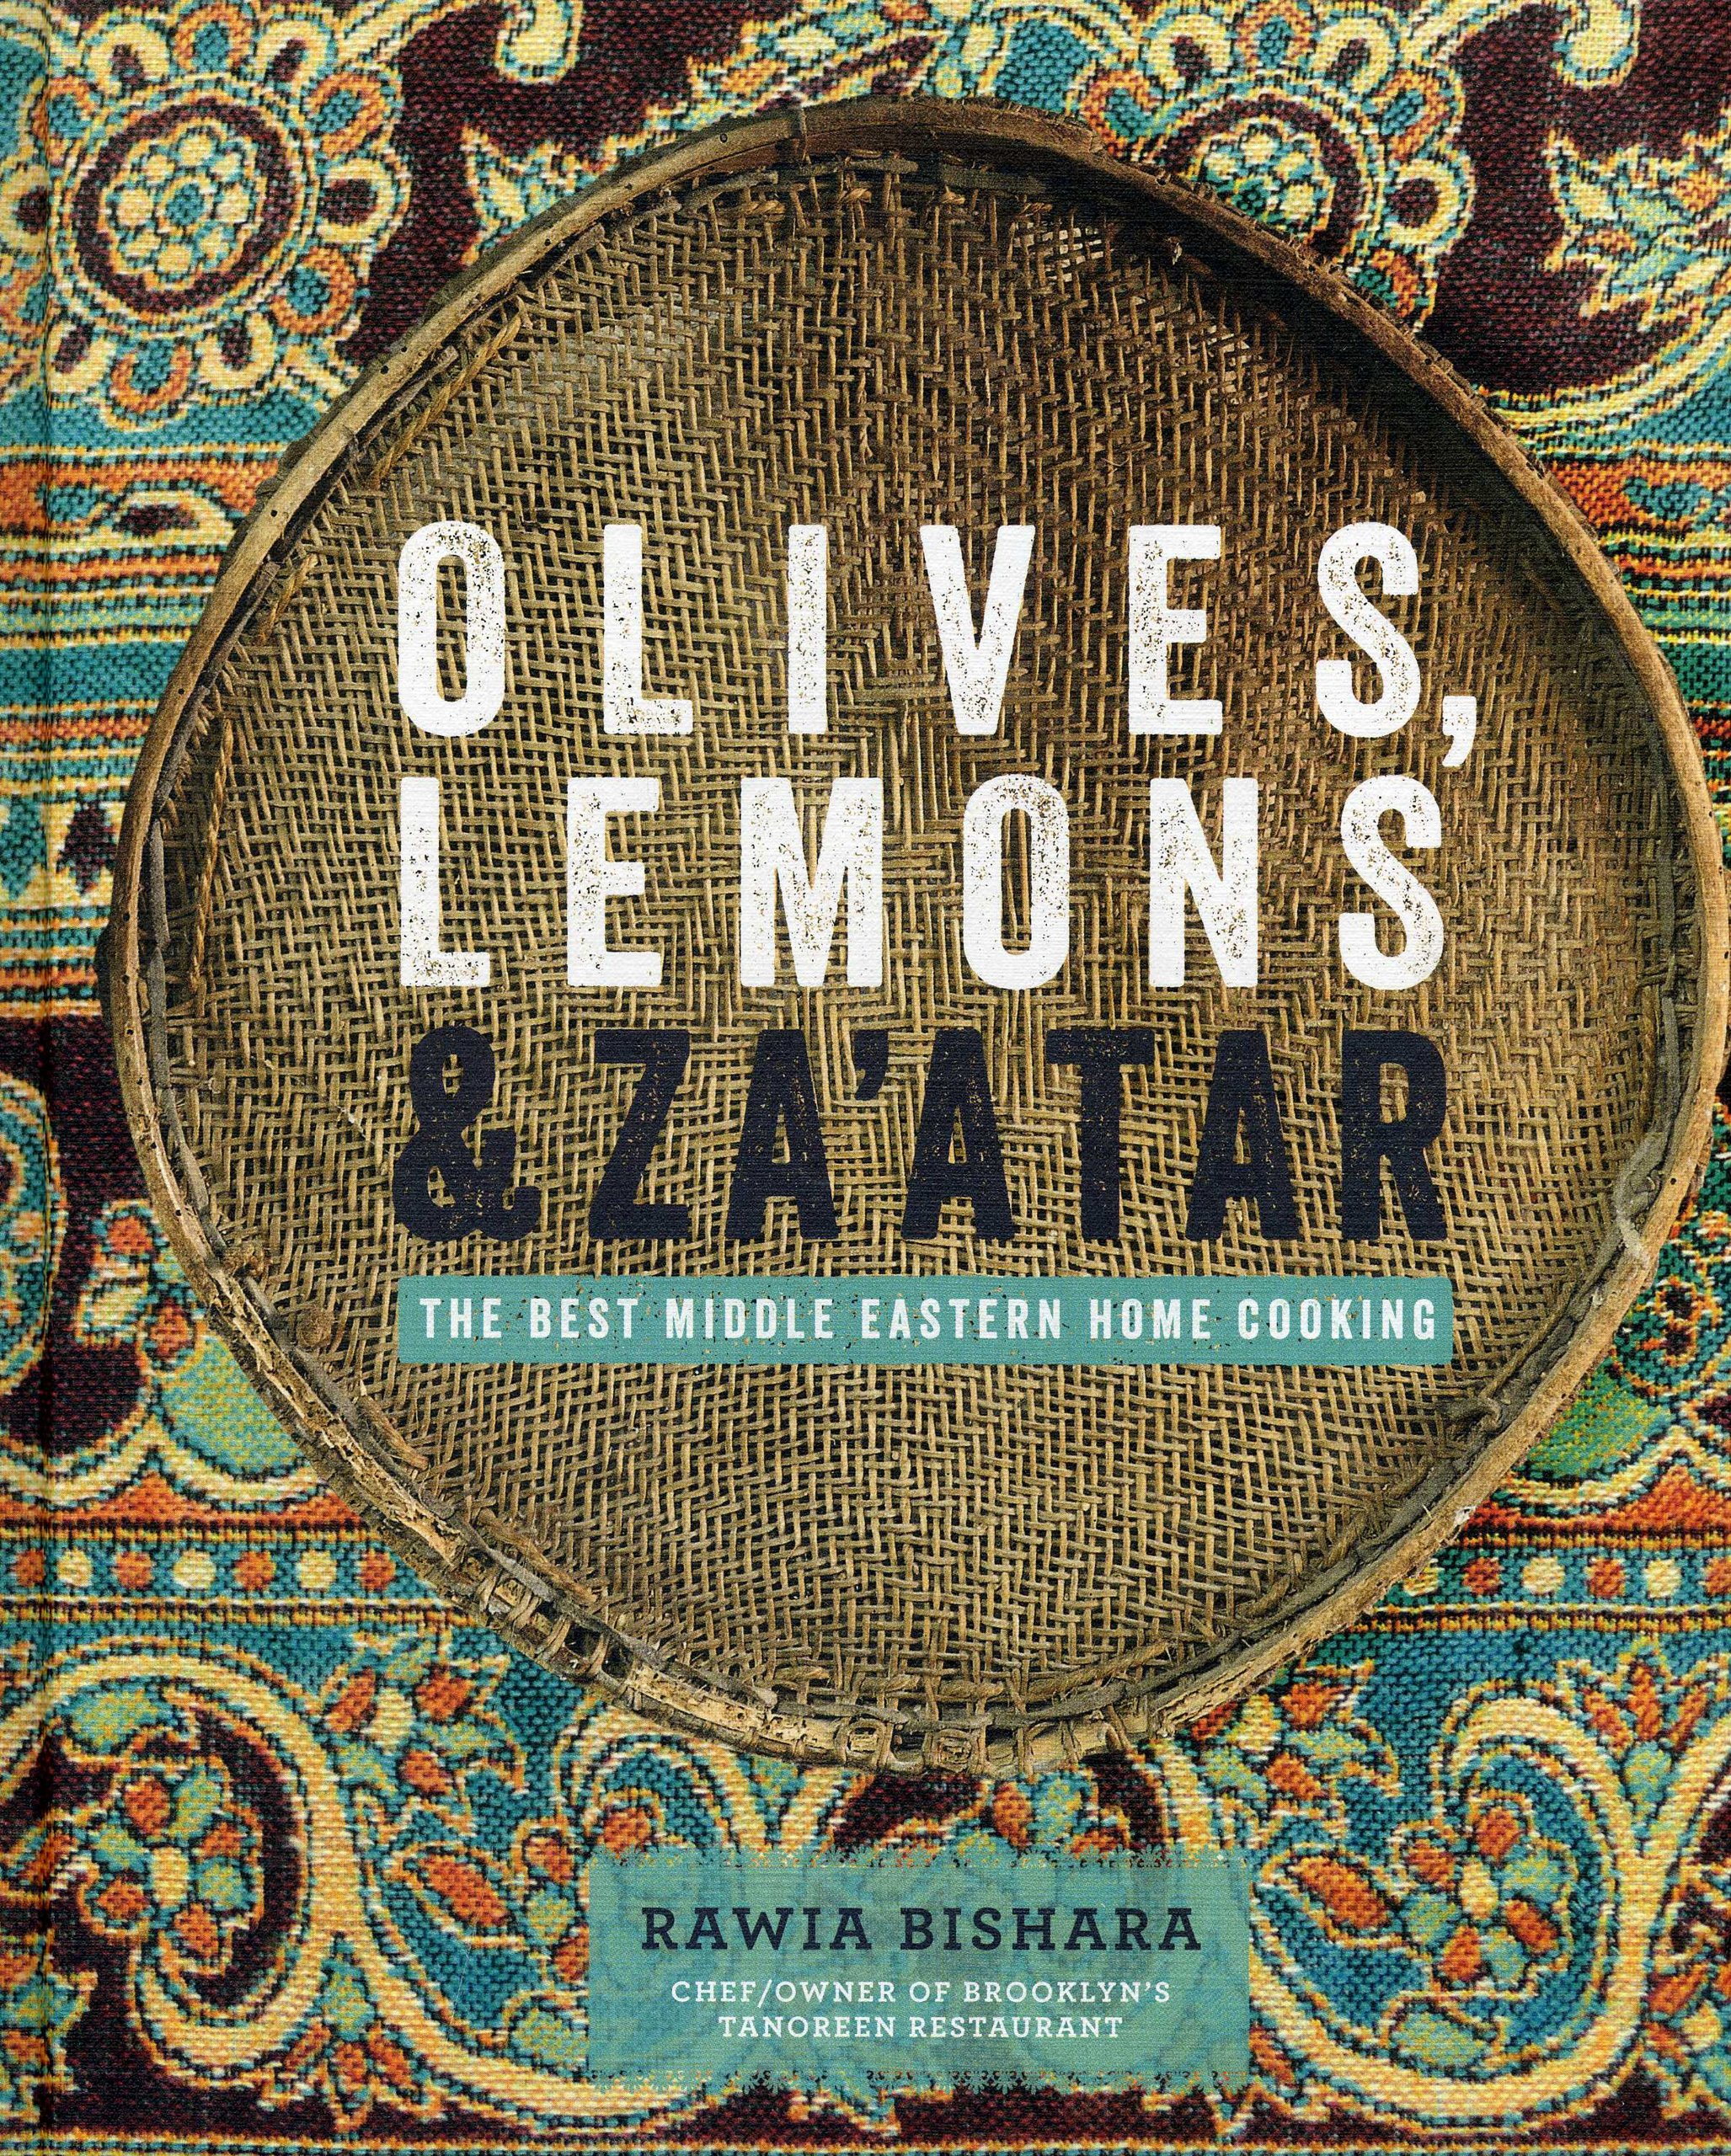 Olives lemons zaatar the best middle eastern home cooking olives lemons zaatar the best middle eastern home cooking rawia bishara 9781906868840 amazon books forumfinder Image collections